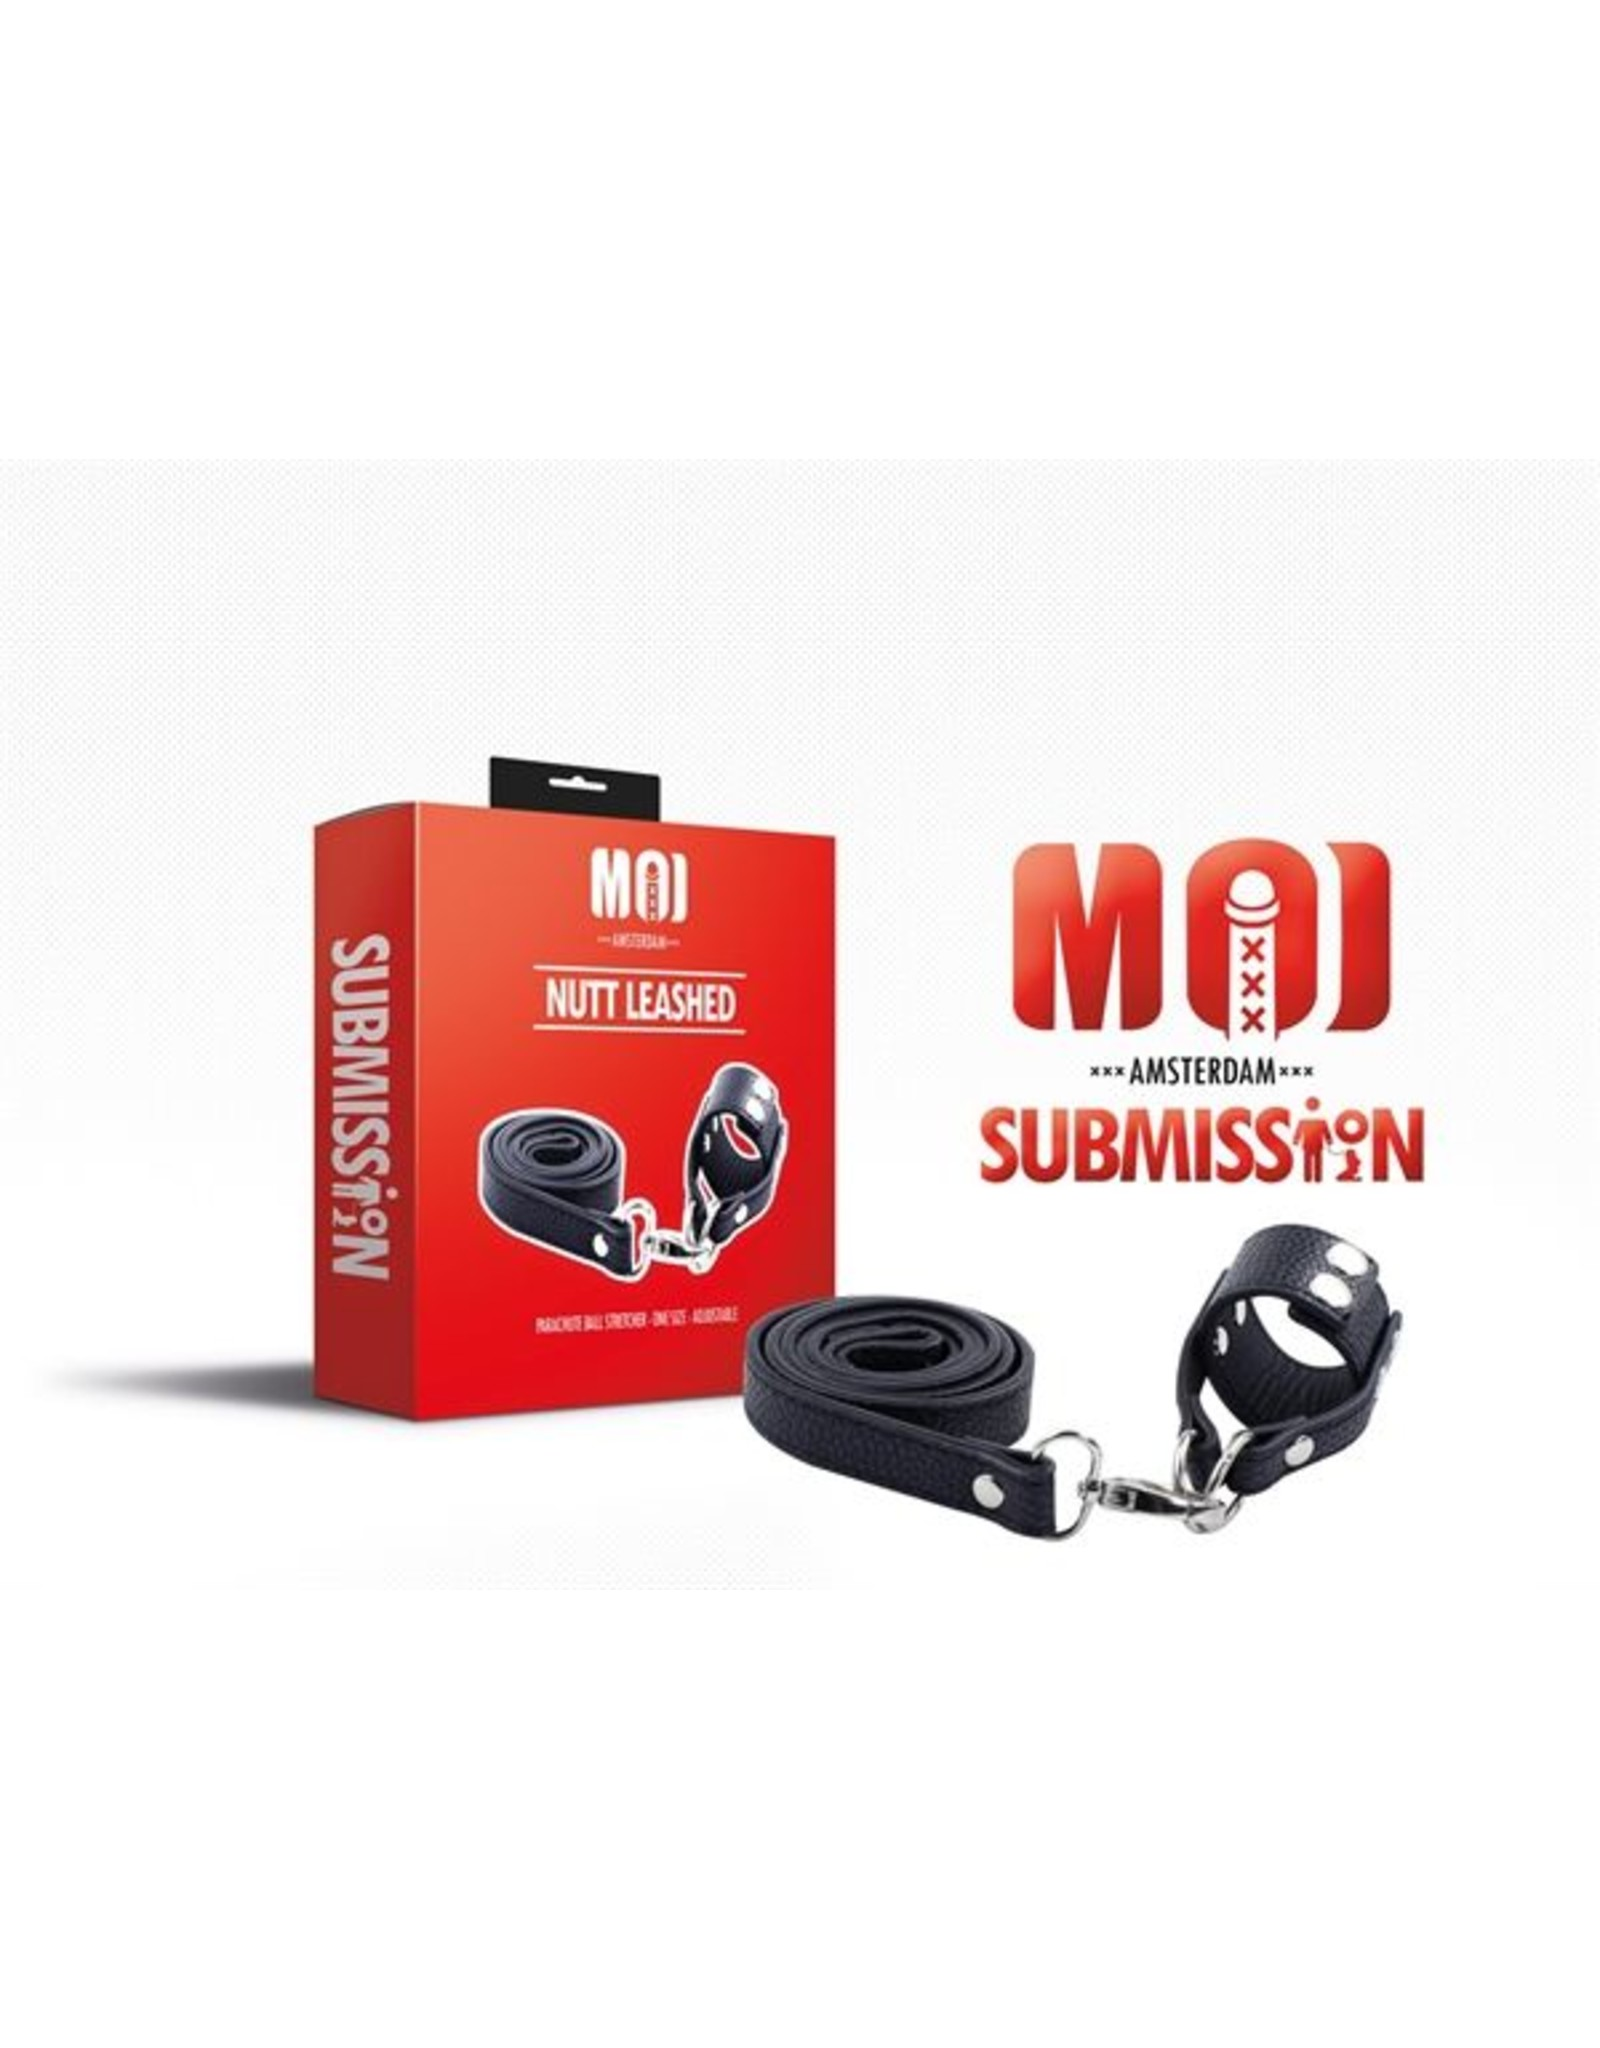 MOI Submission MOI Submission Nutt Leashed Parachute Ball Stretcher